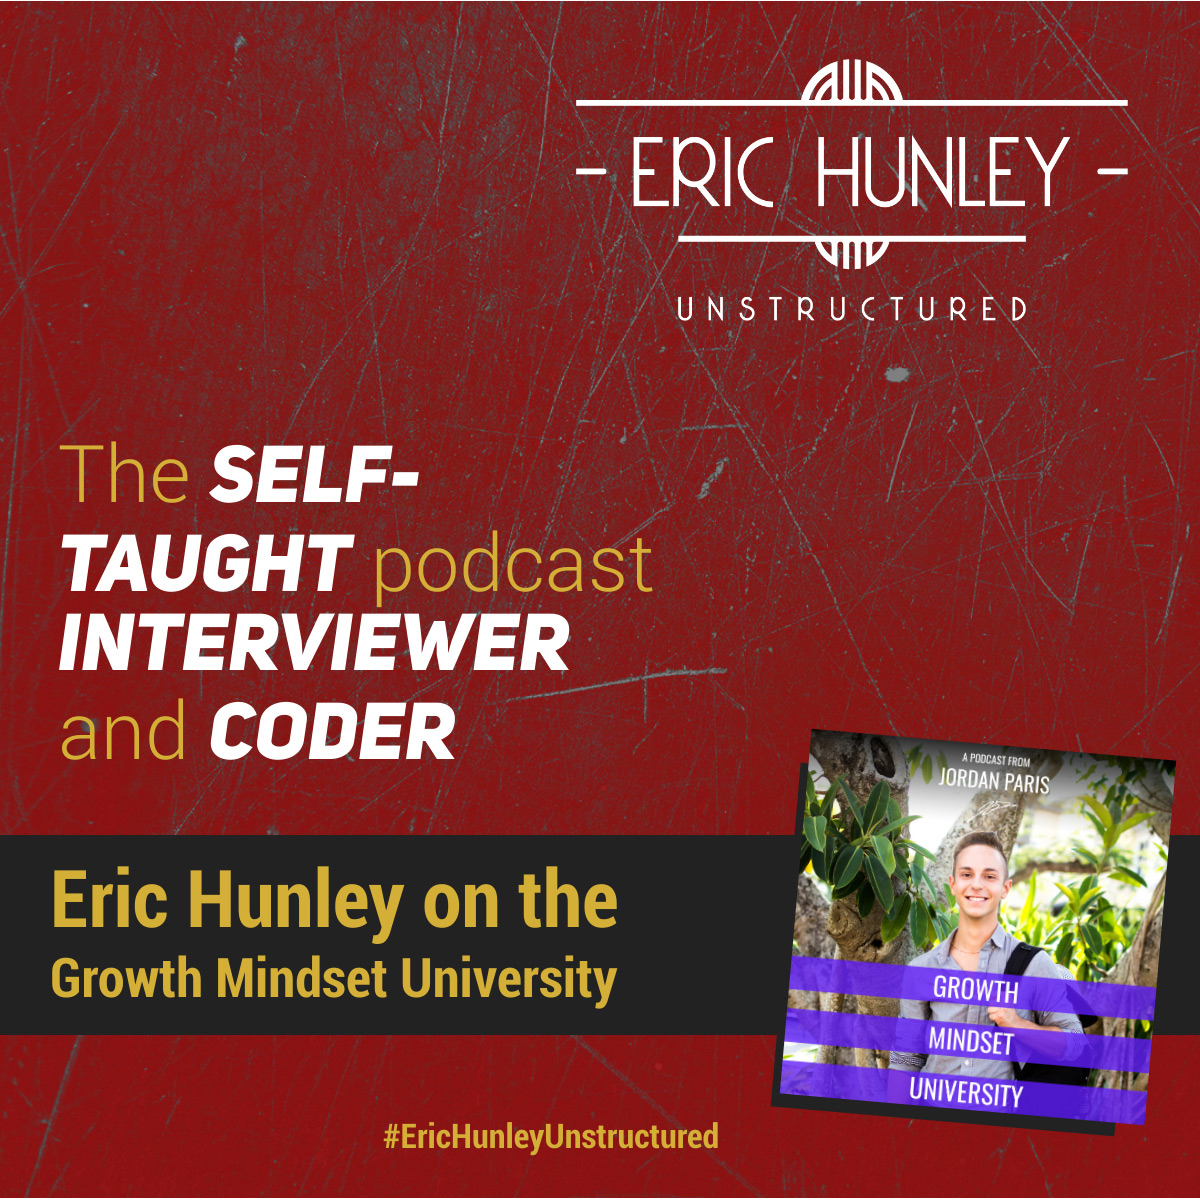 Eric Hunley Podcast Appearance Interviews - Growth Mindset University Square Post